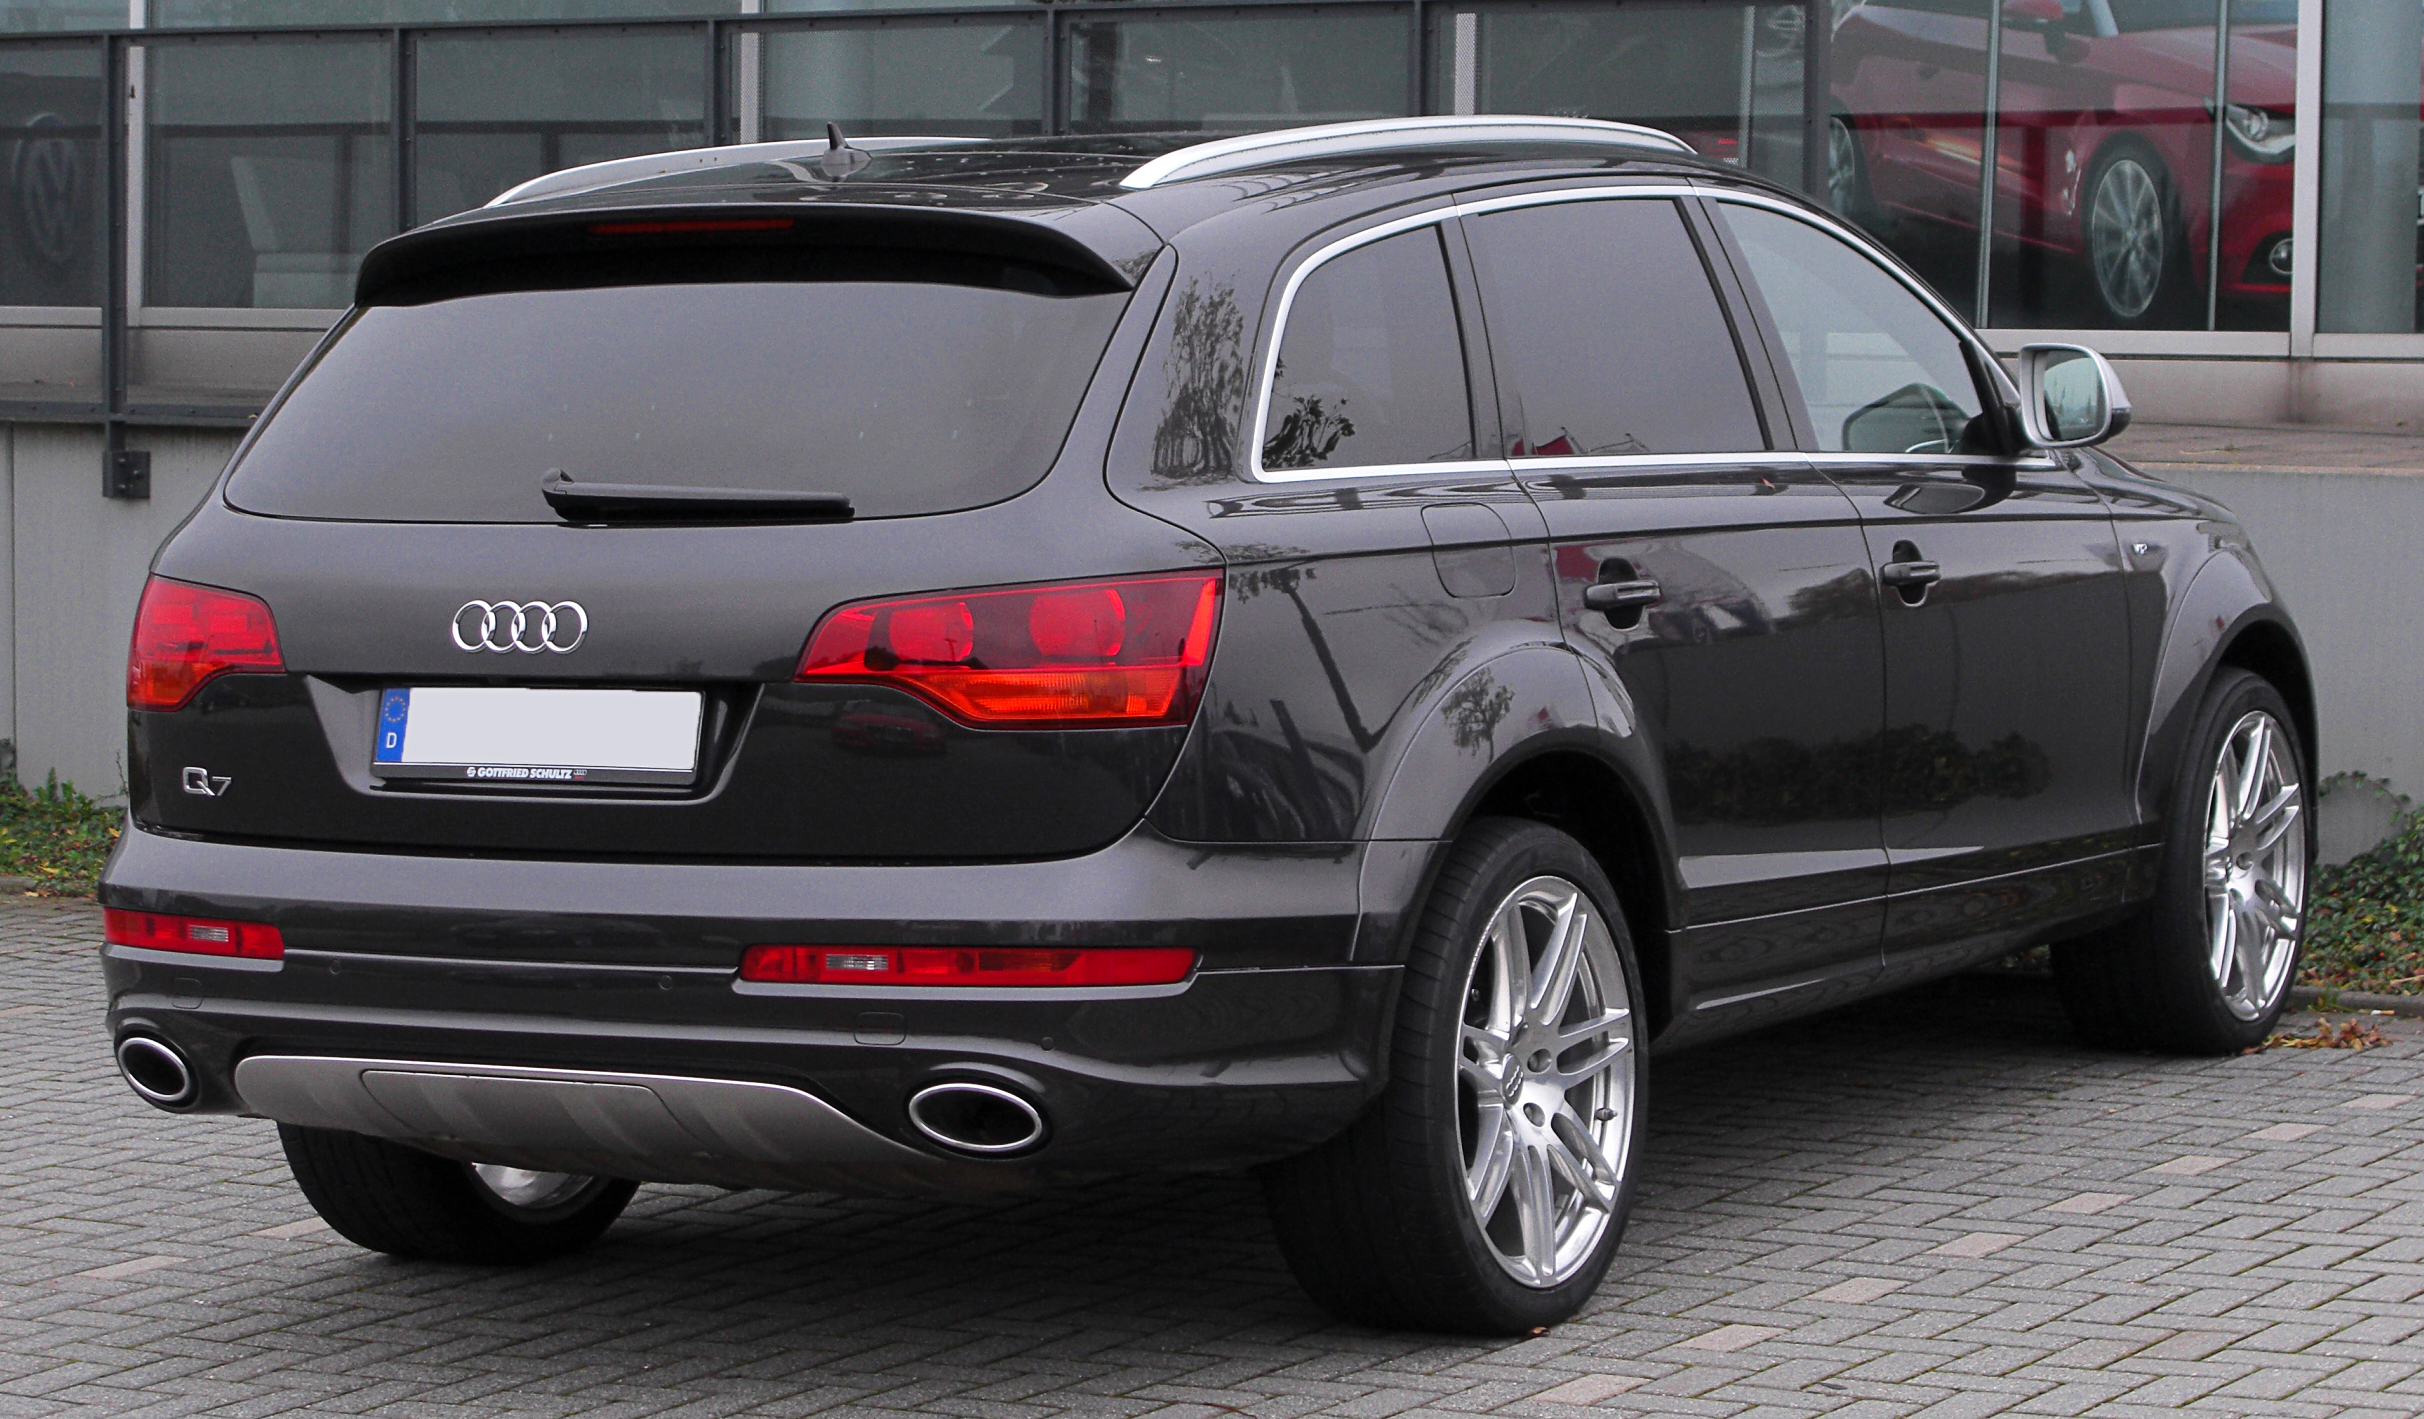 Audi Q7 Related Images Start 200 Weili Automotive Network